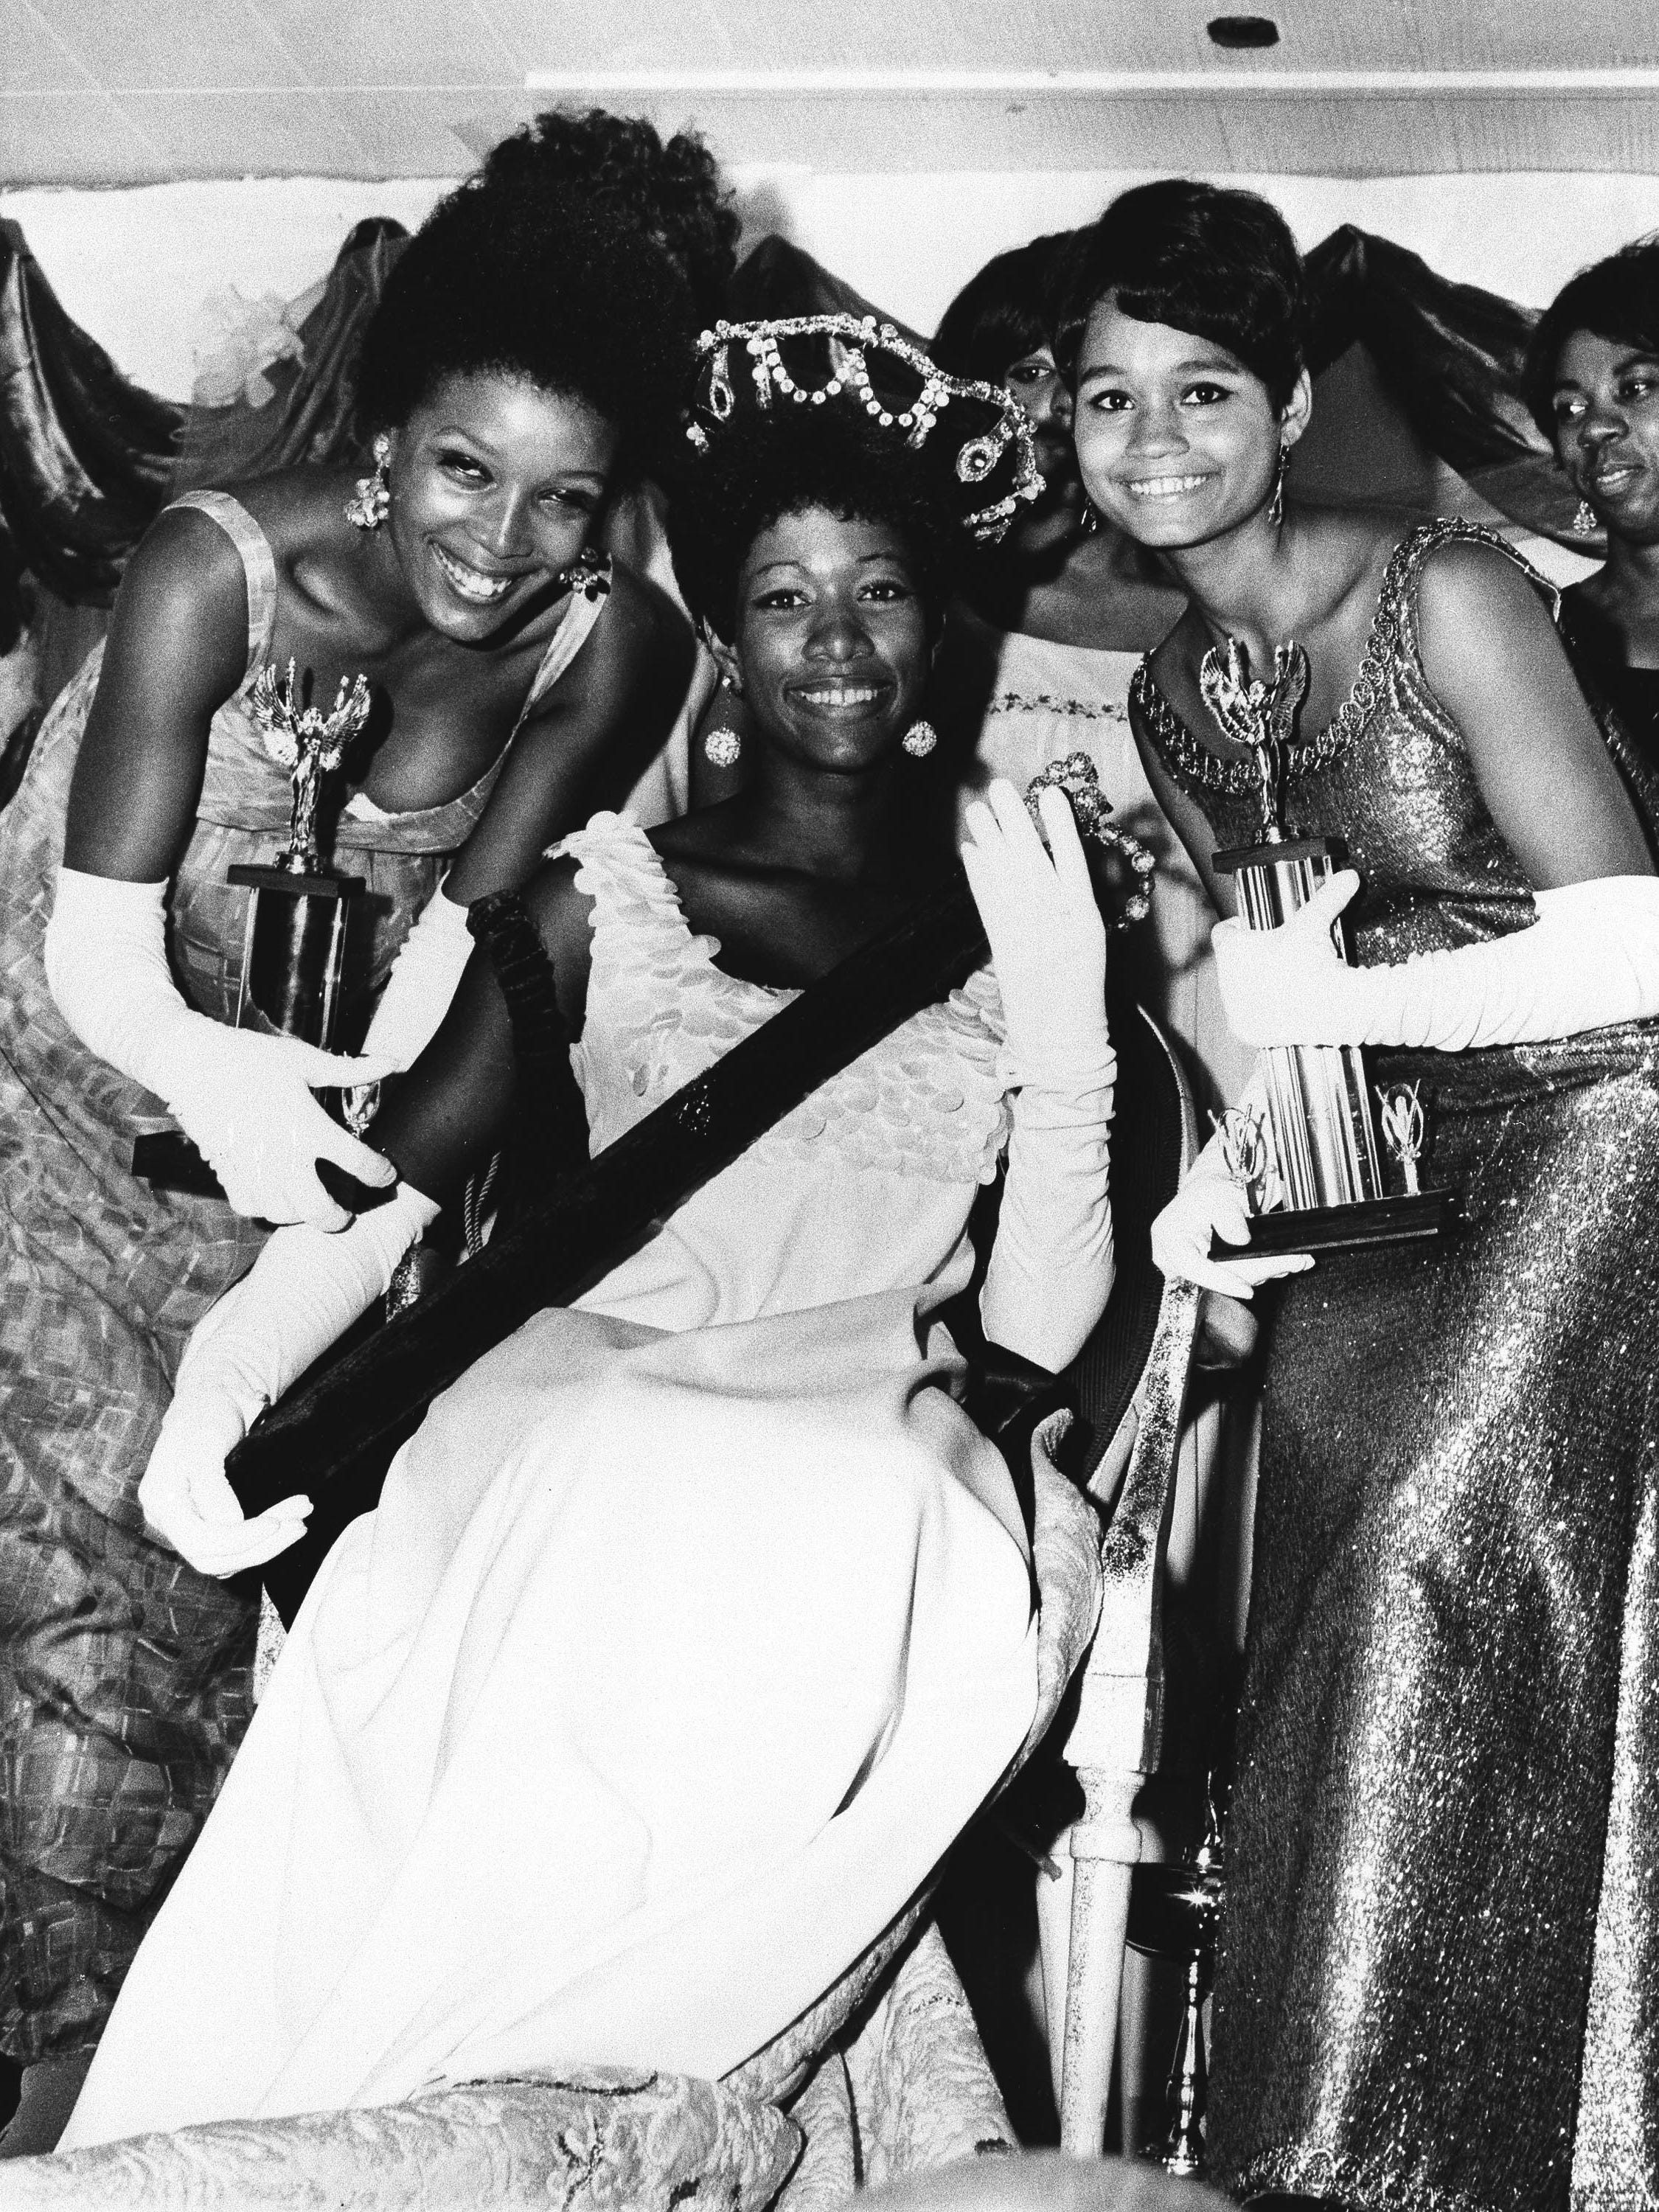 'Black girl magic at itsfinest': Juneteenth pageants let women, girls be unapologetically Black